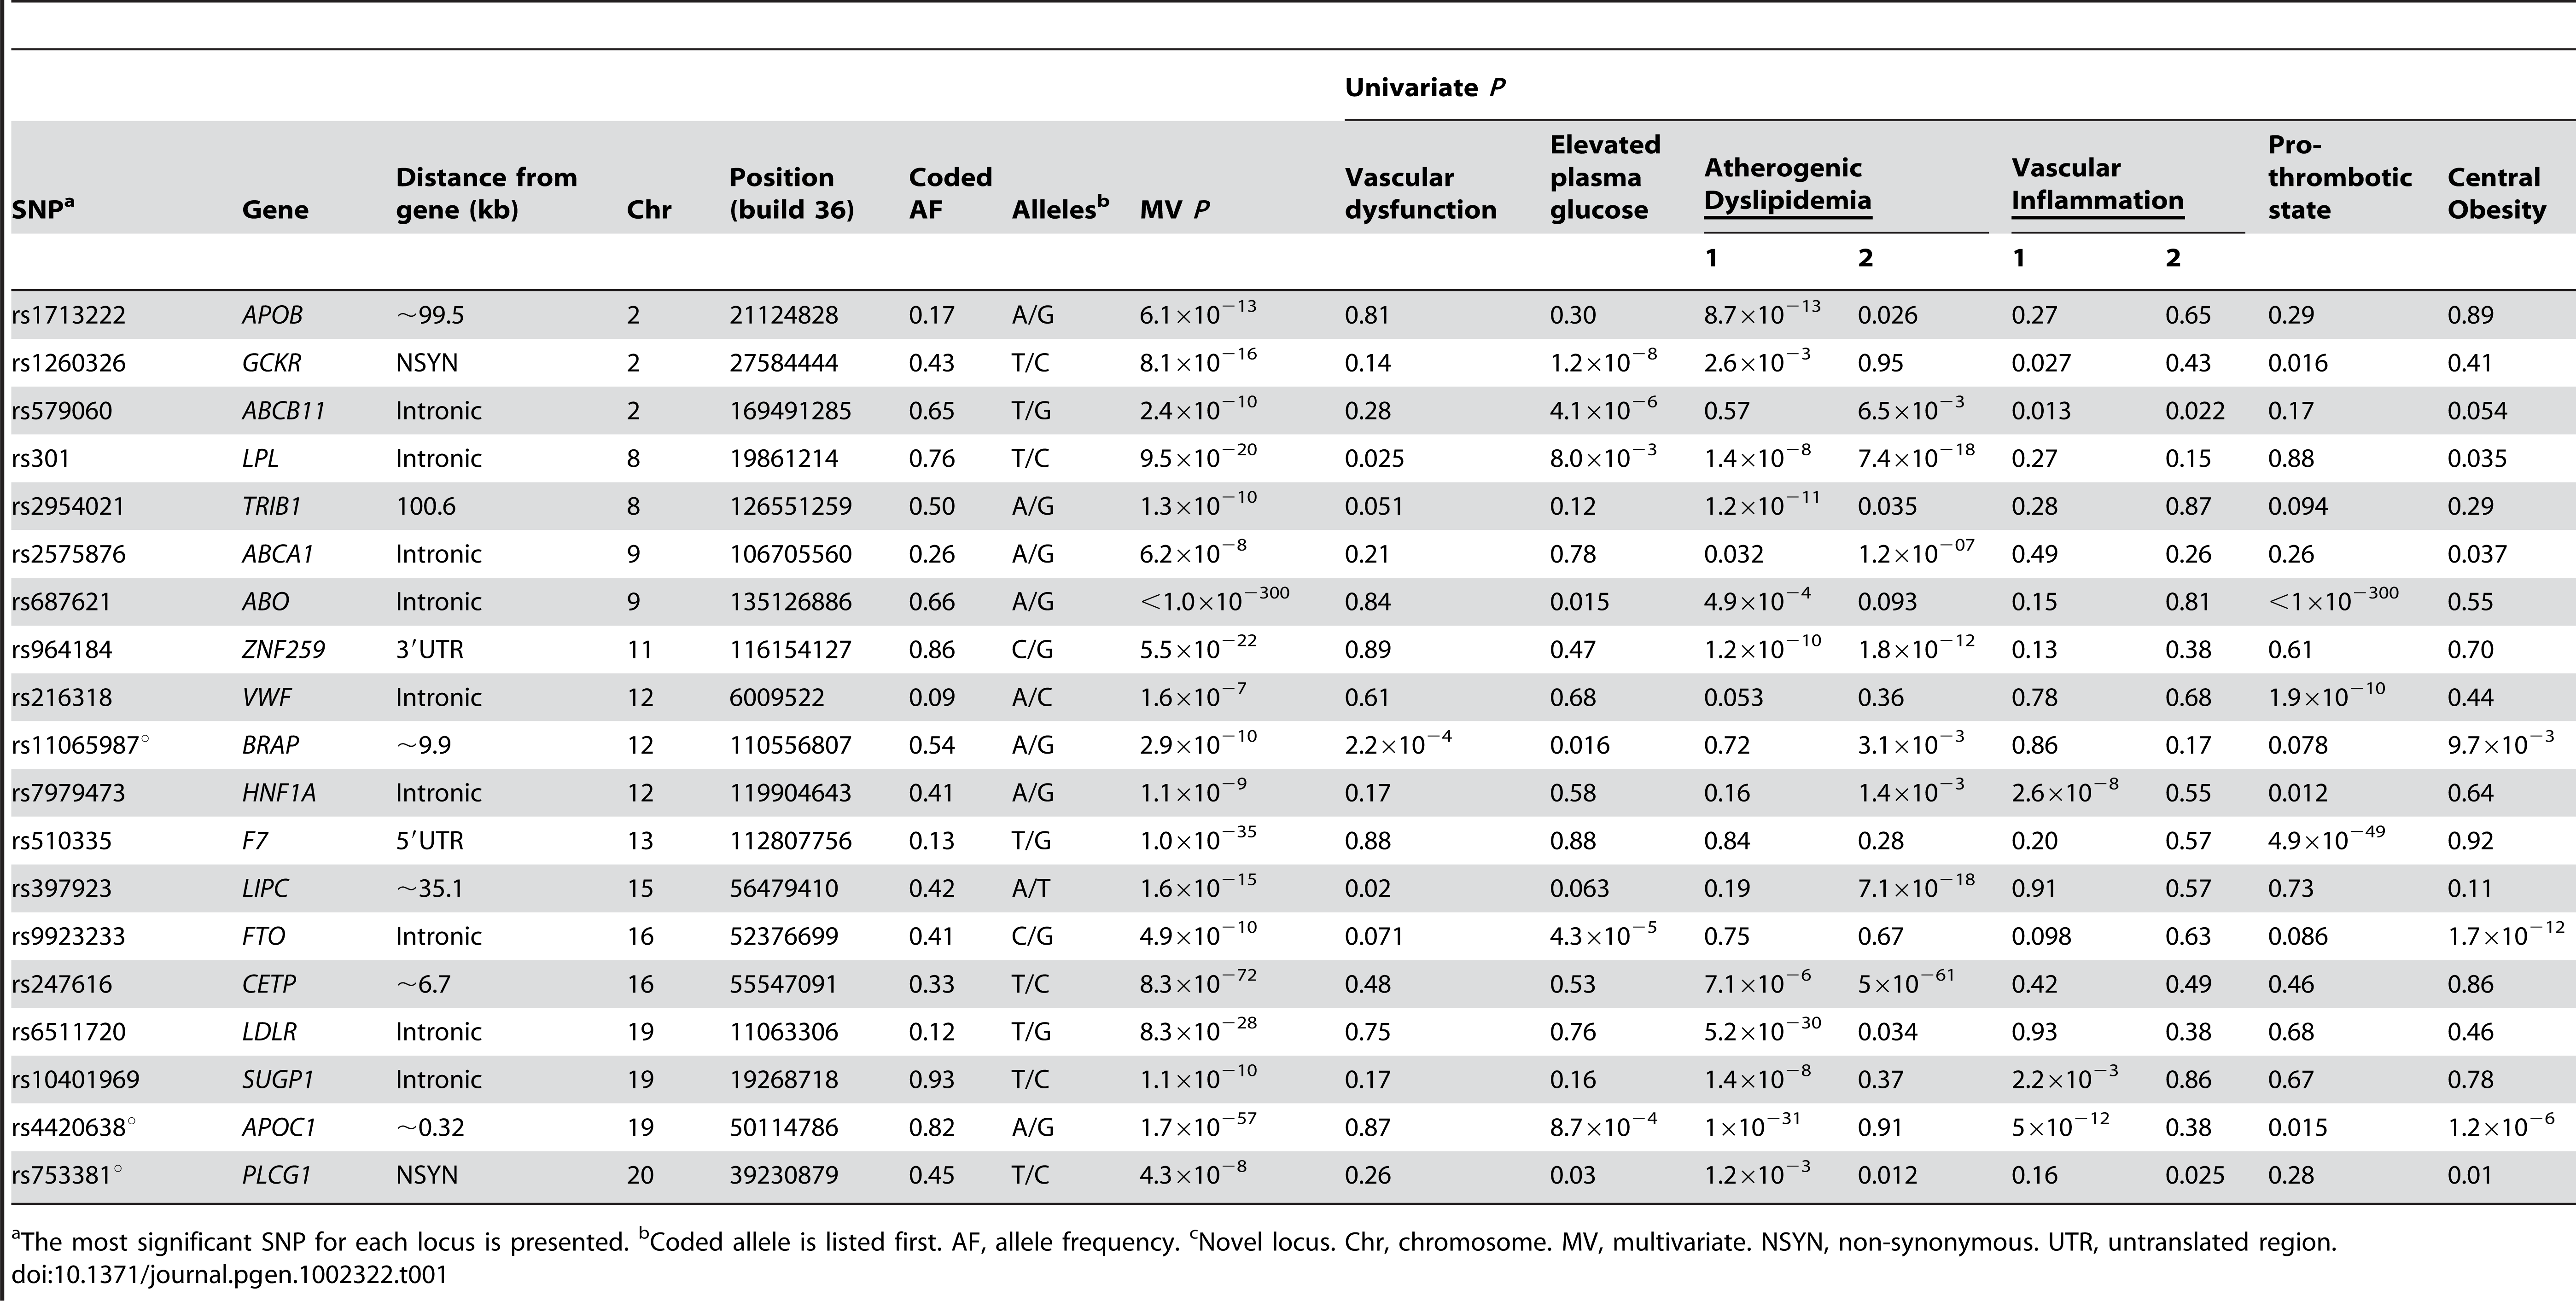 Associations for 19 known, confirmed, or possible new loci for metabolic syndrome trait dimensions in n = 19,468 European Americans from five studies.